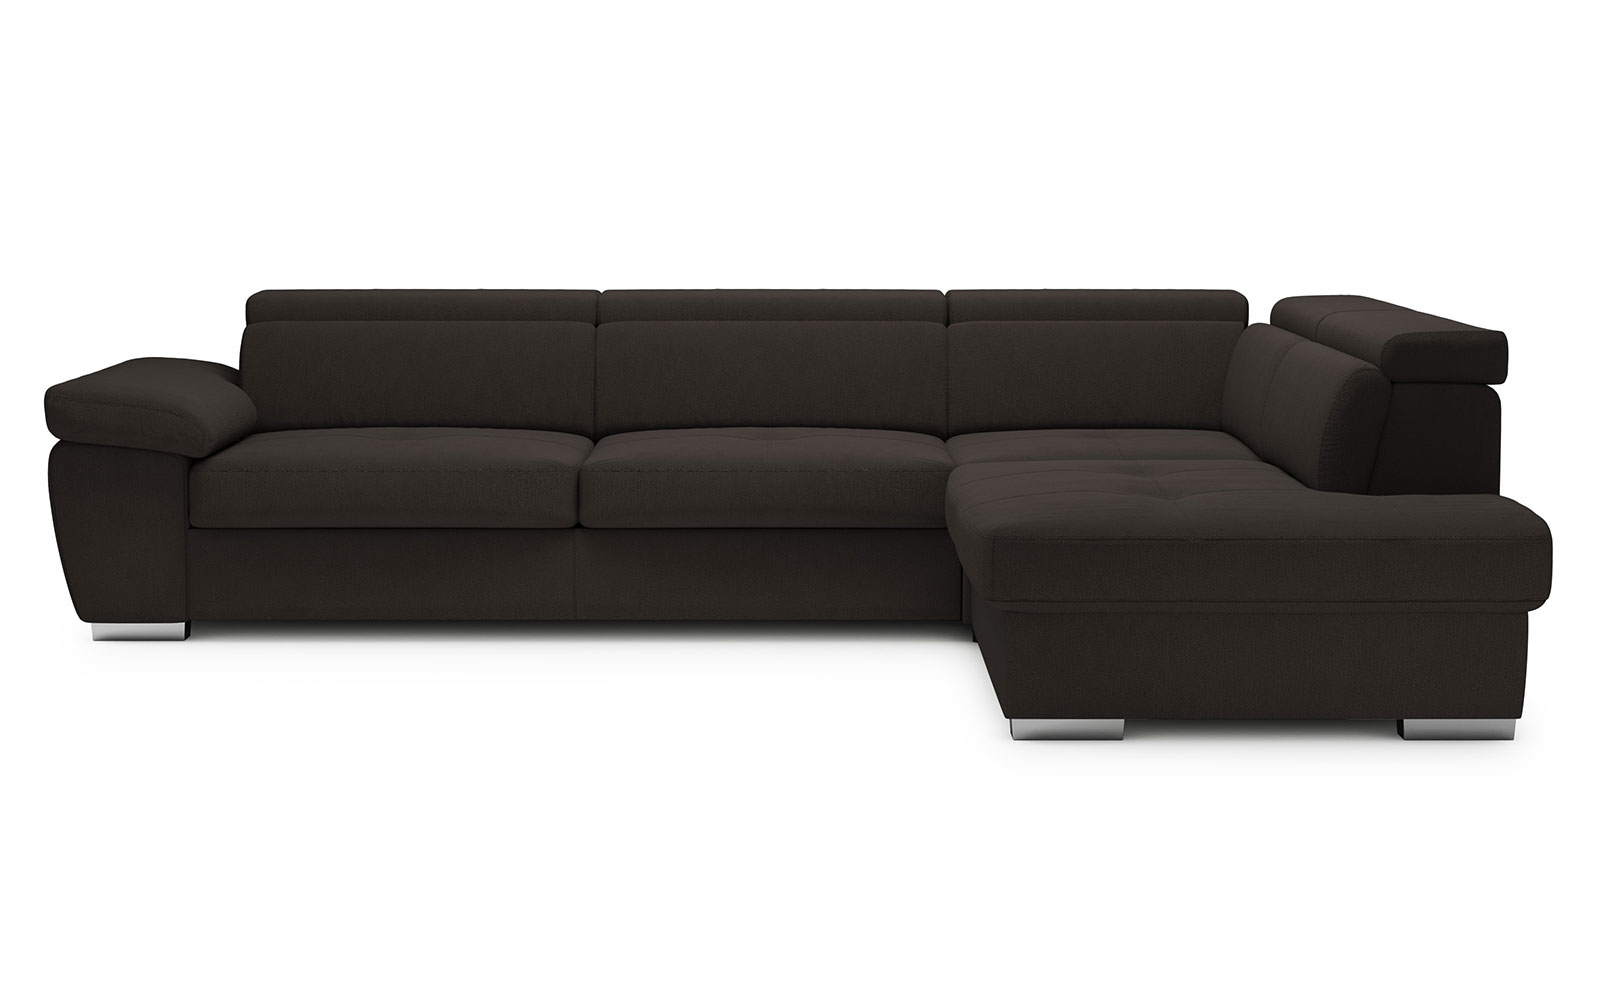 Rosso Medium Corner Sofa - soft touch marrone scuro